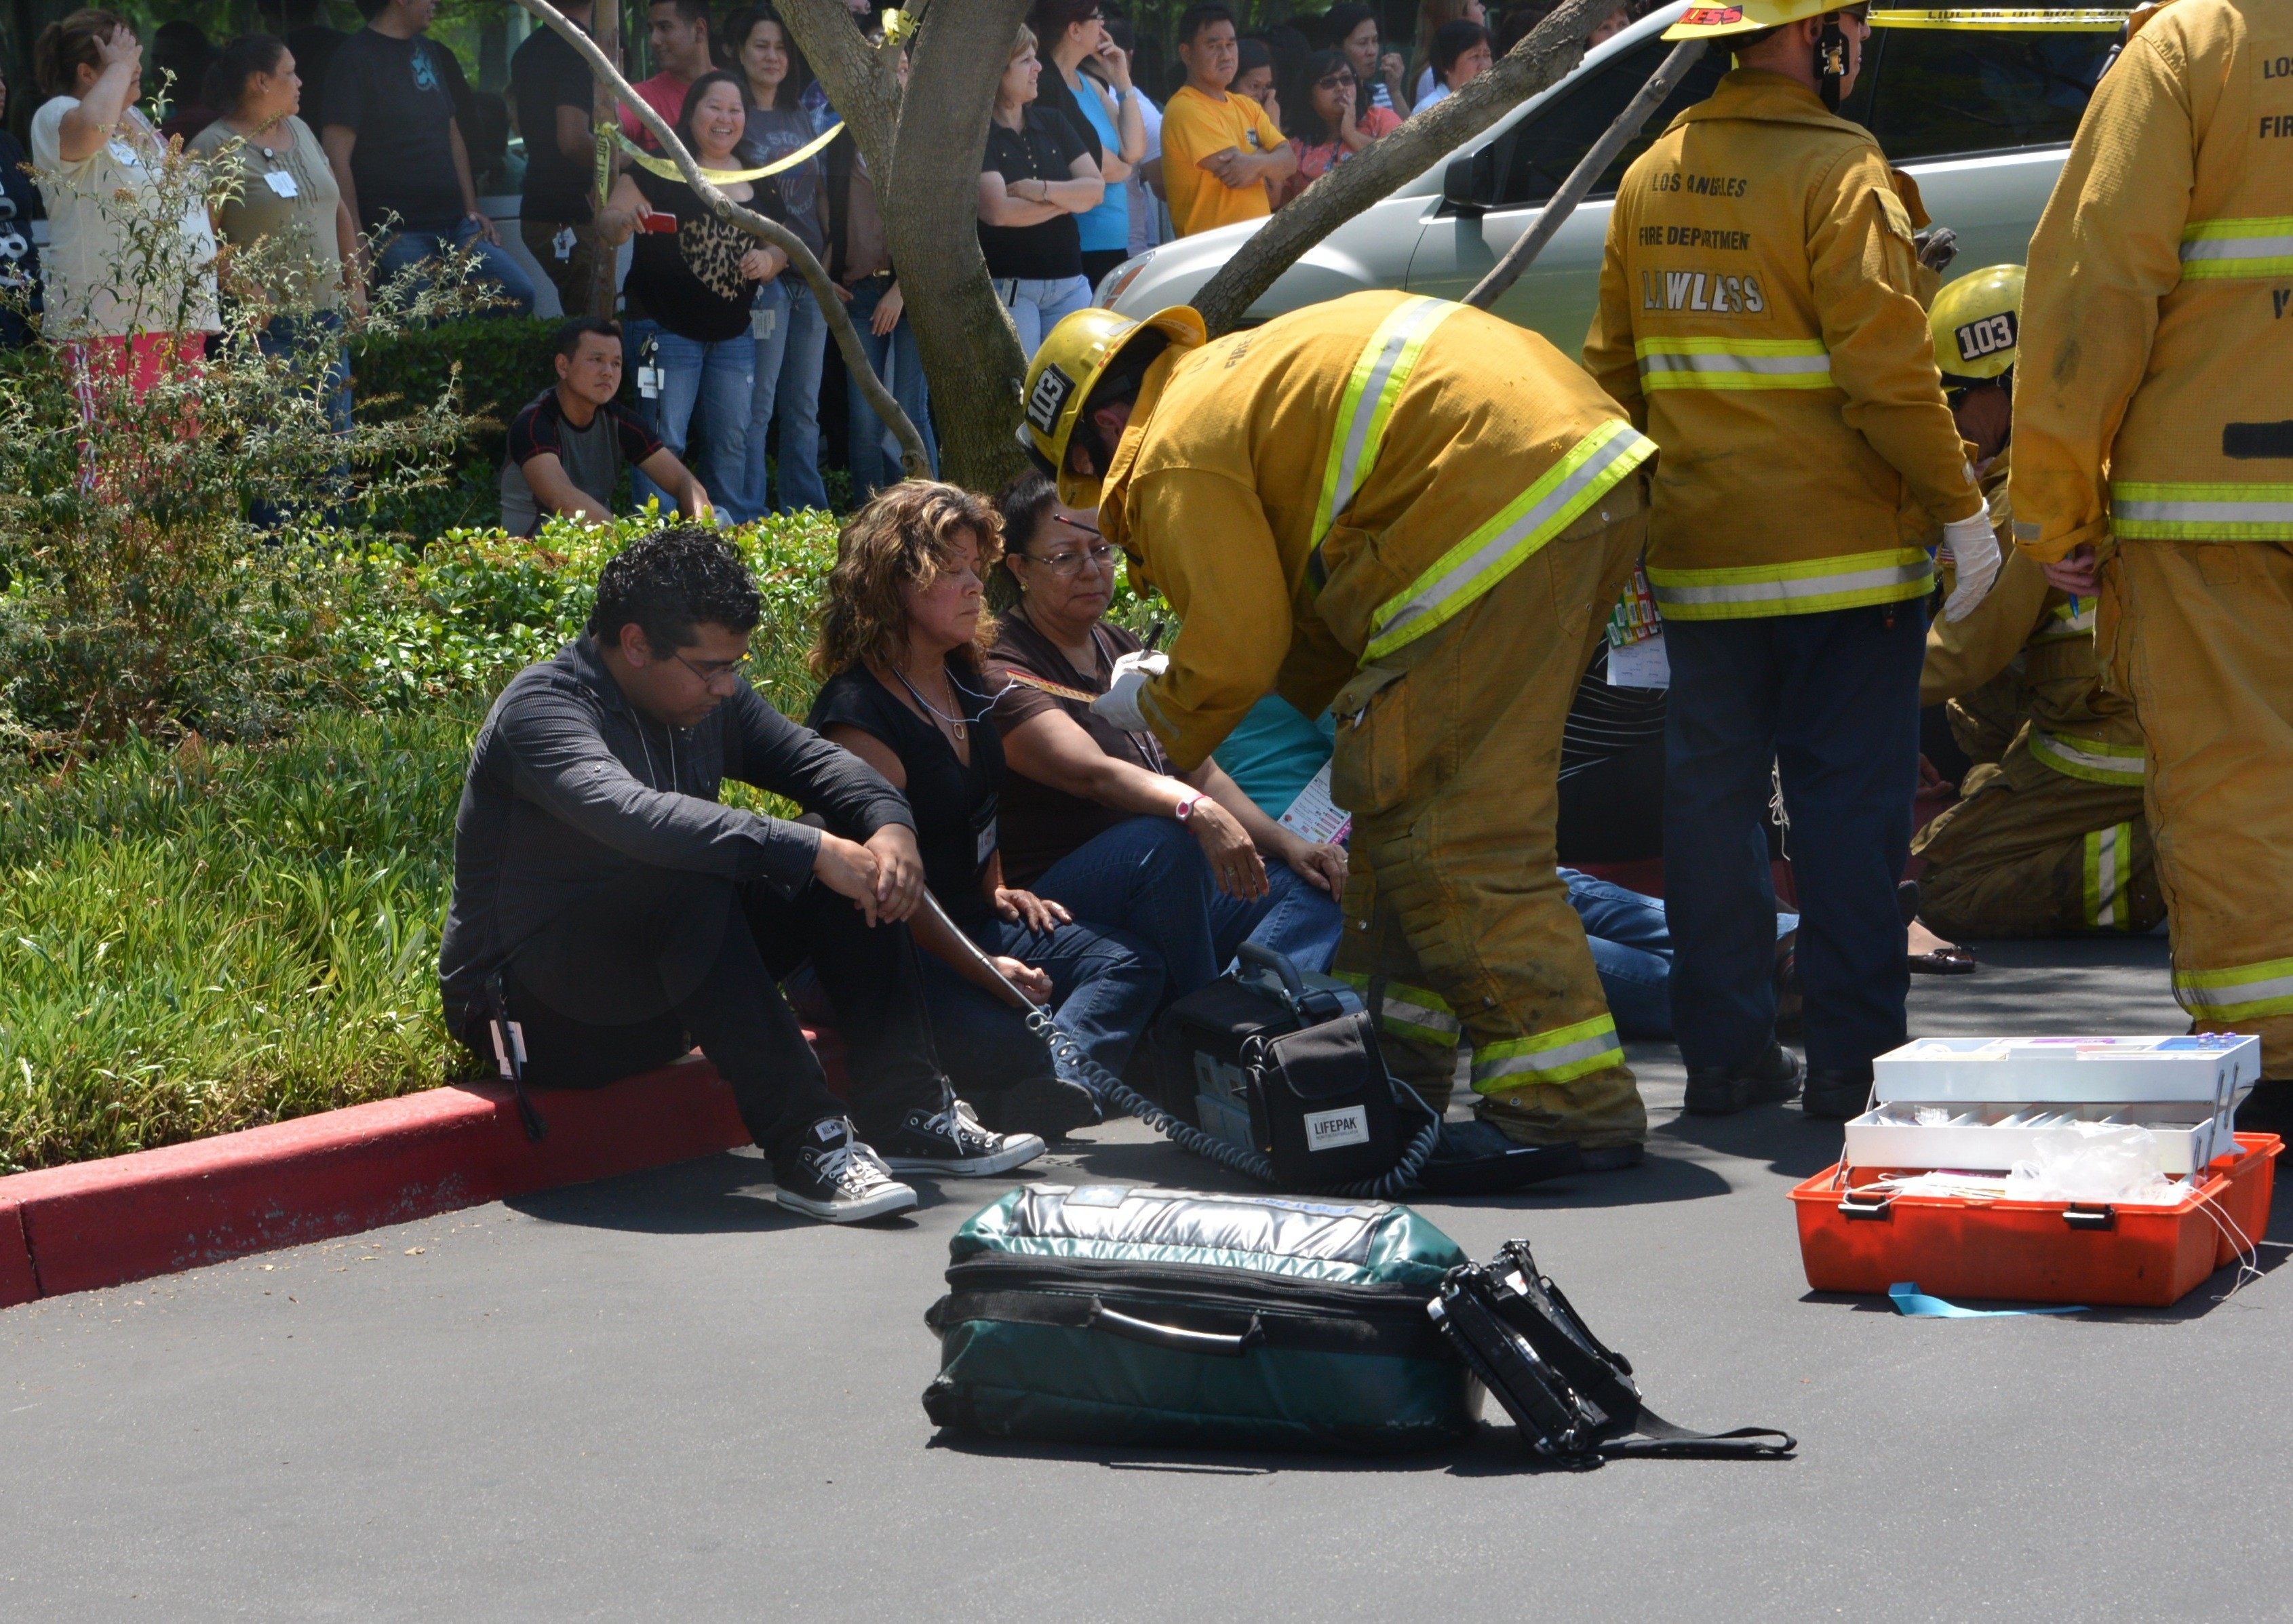 UPDATE: Medtronic Building Evacuated After Chemical Spill